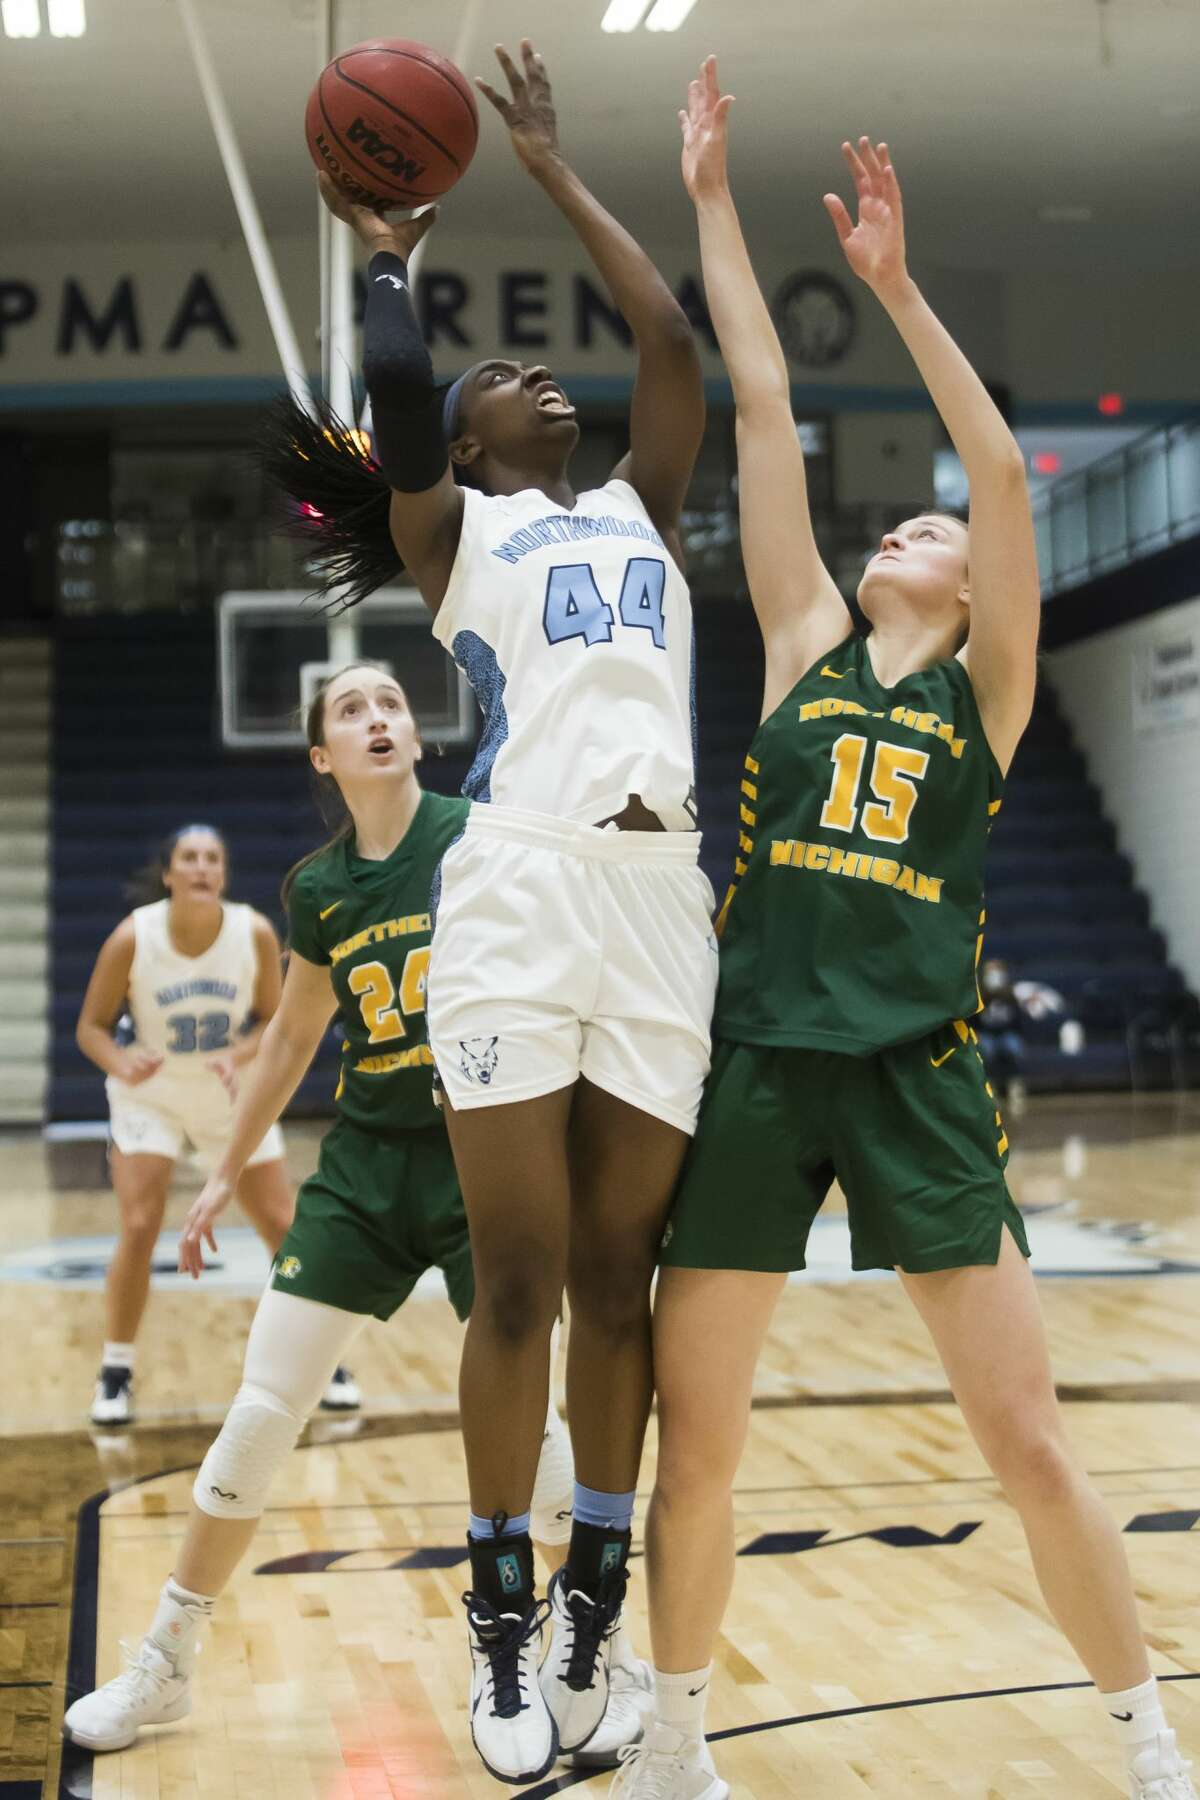 Northwood's Jayla Strickland takes a shot during a game against Northern Michigan Friday, Feb. 5, 2021 at Northwood. (Katy Kildee/kkildee@mdn.net)